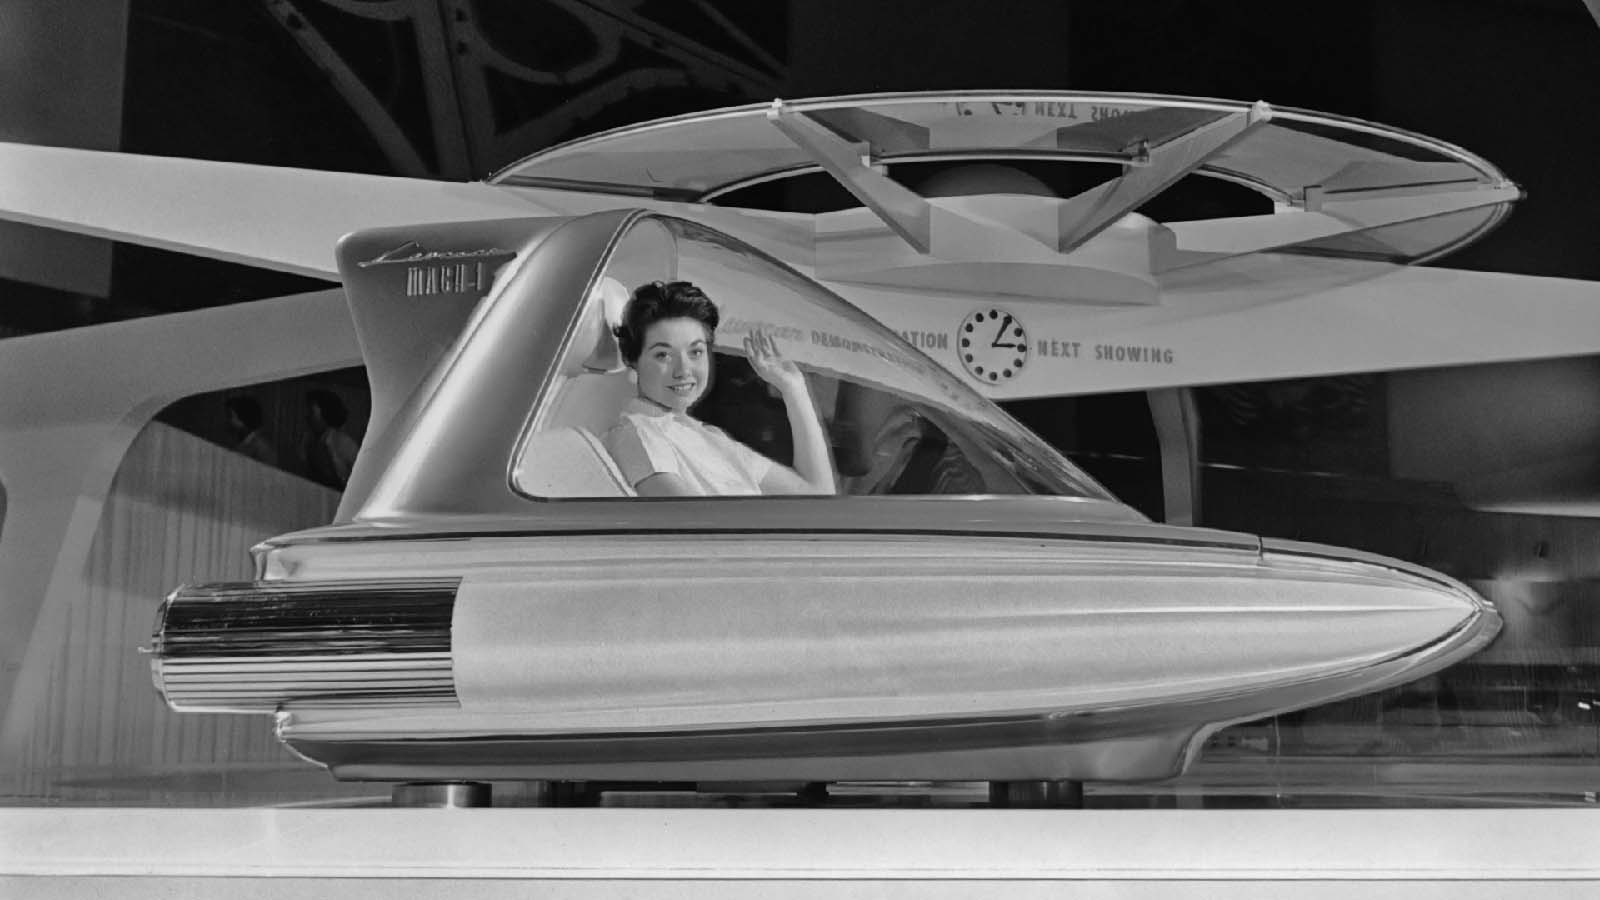 Where the Ford Mach I Levacar is going, it doesn't need roads. Shown at the Ford Rotunda in Dearborn, Michigan, 1959, the single-seat concept car scrapped wheels and touted a top speed of 500 m.p.h. None of the cars were ever built, much to society's dismay.